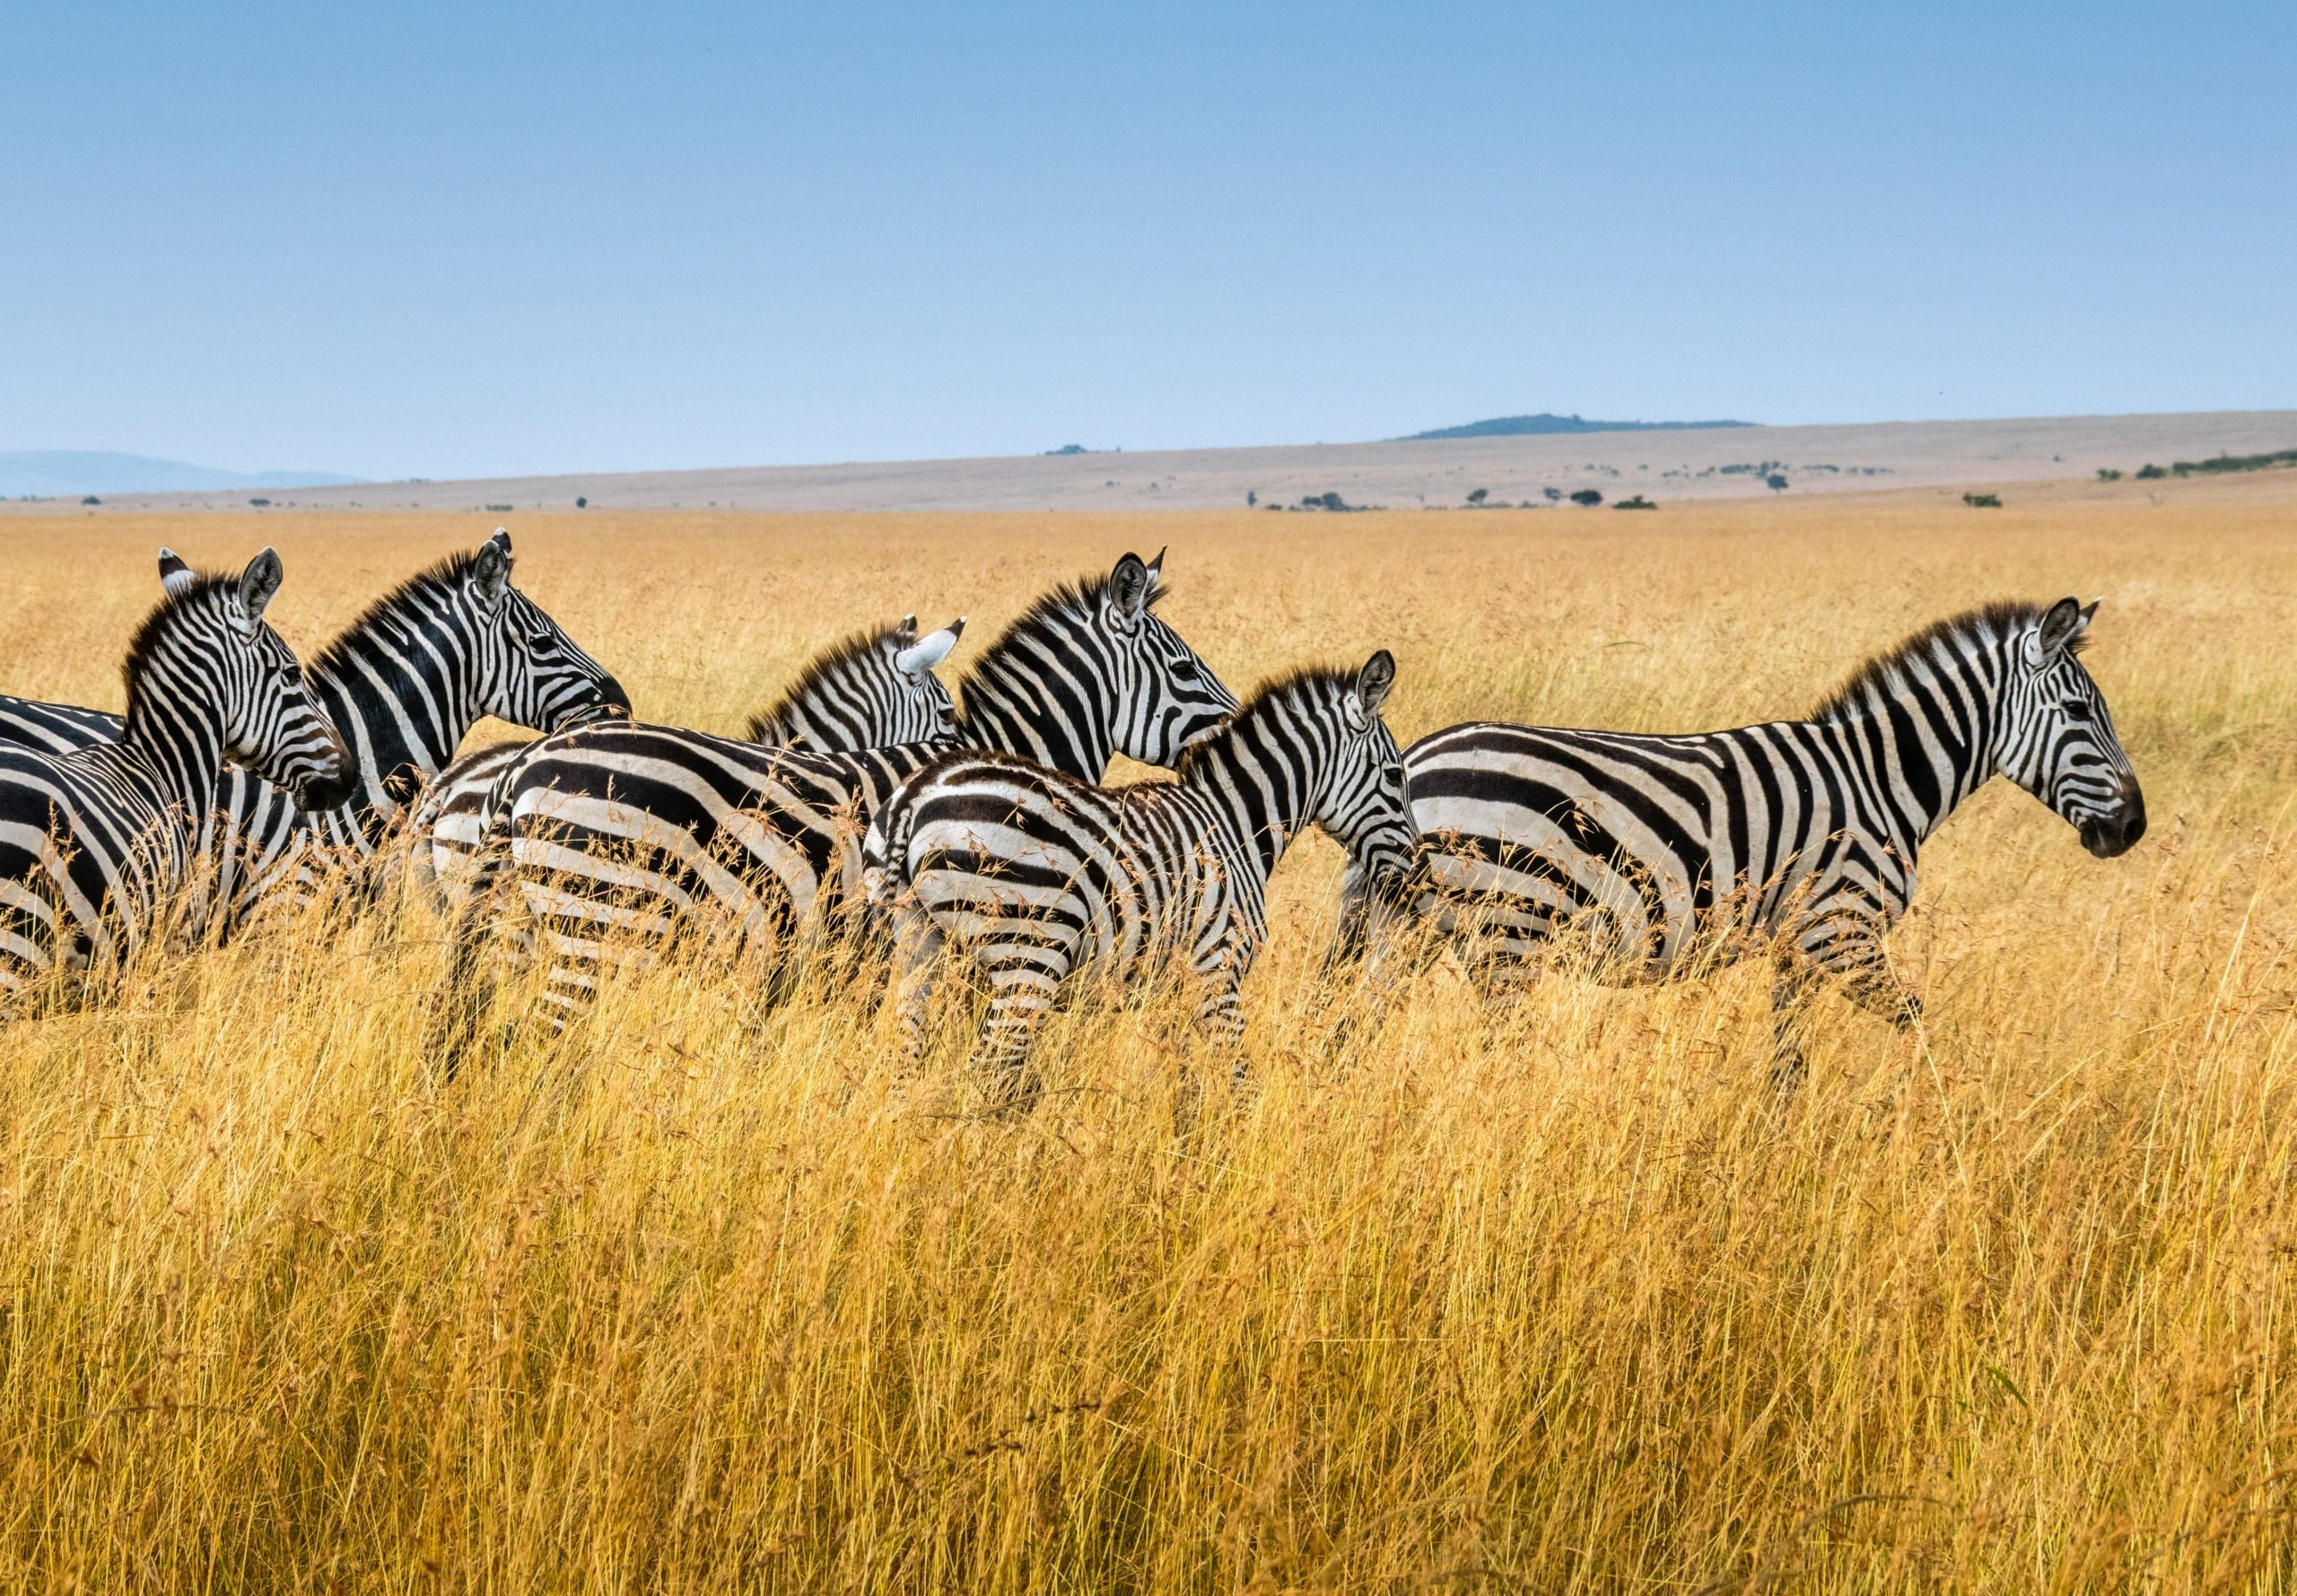 Zebra in tall grass - Kenya Destination